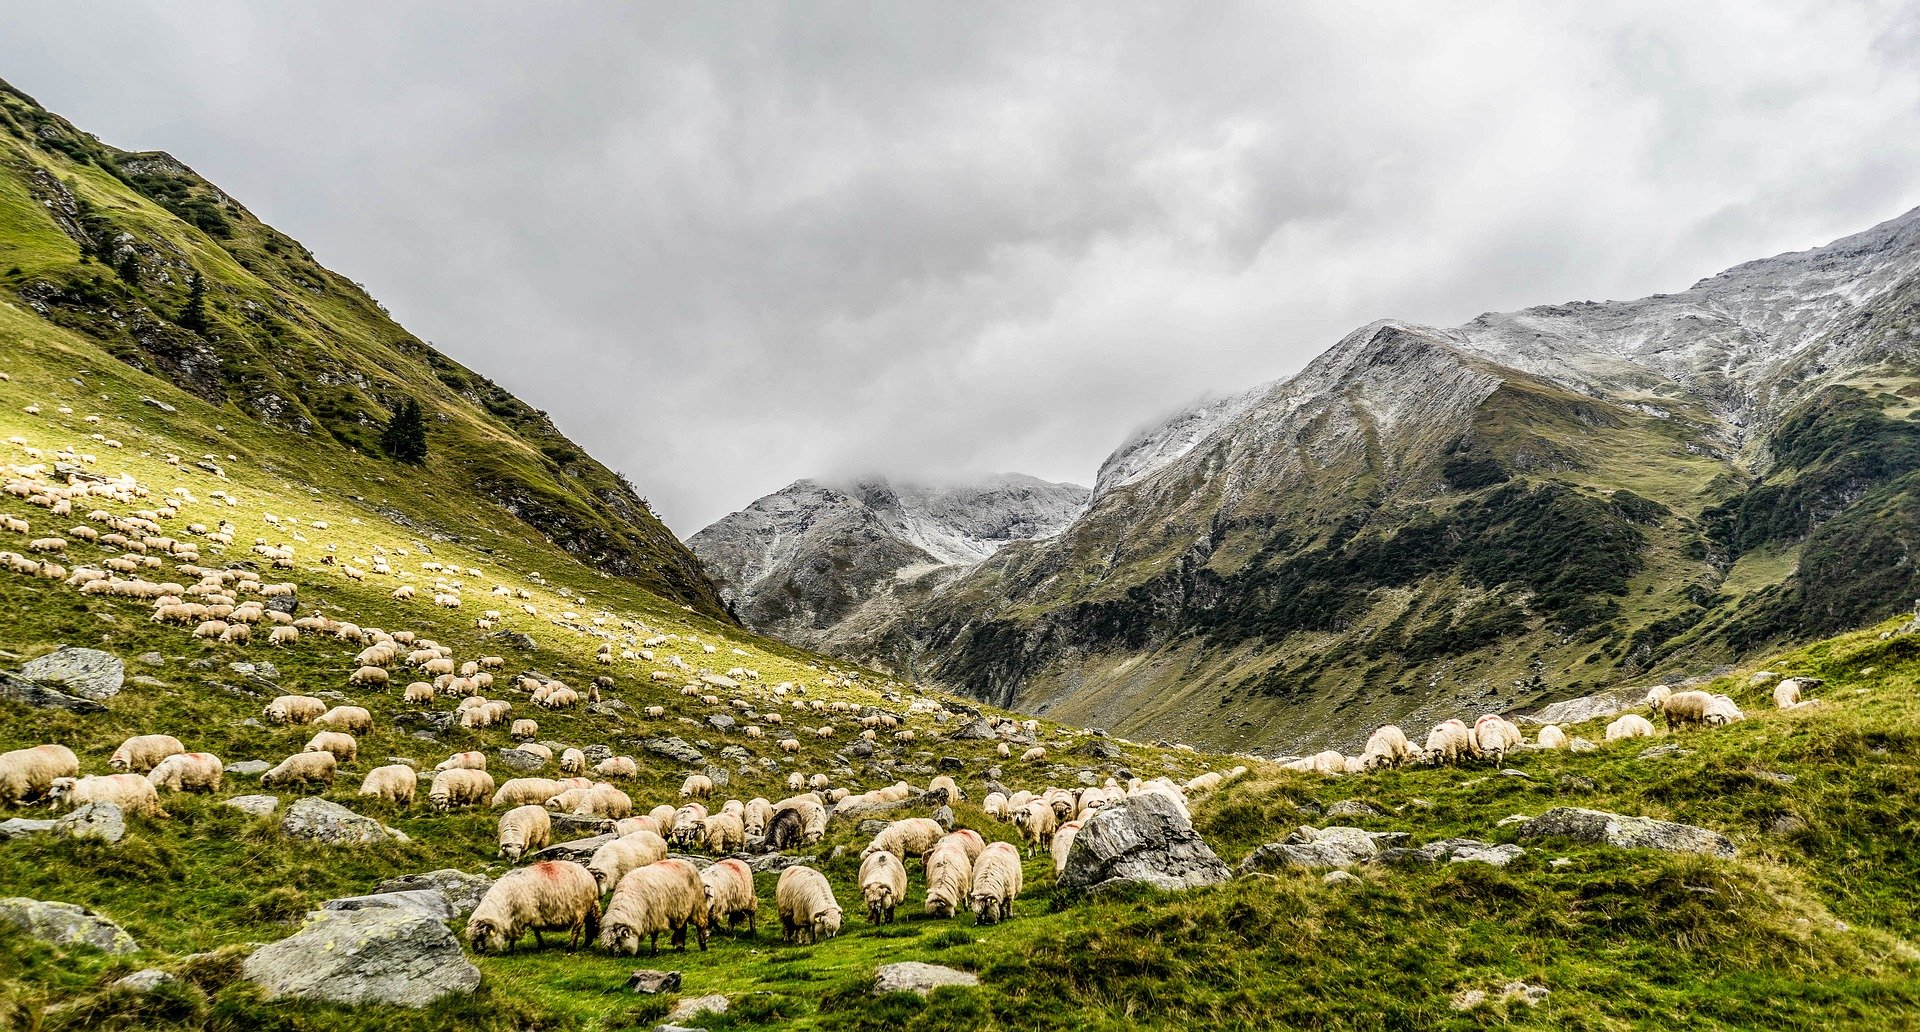 240 Cantabrian Farmers Will Distribute 75,000 Euros In Aid To Sheep And Goats